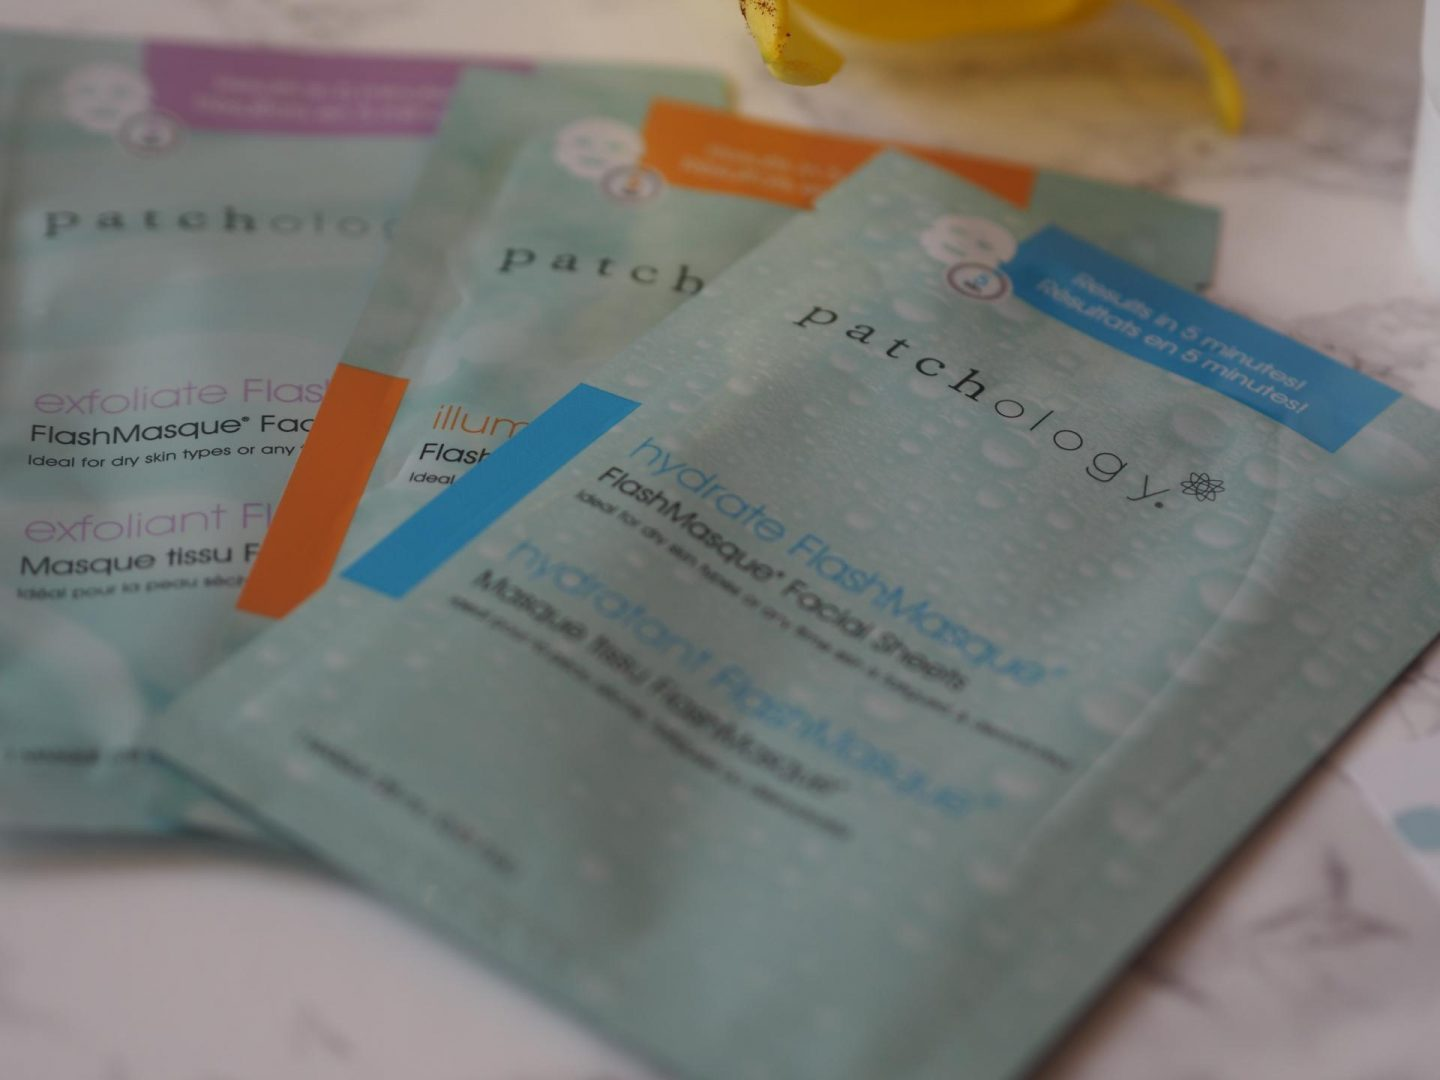 Patchology Flash Masque Trio